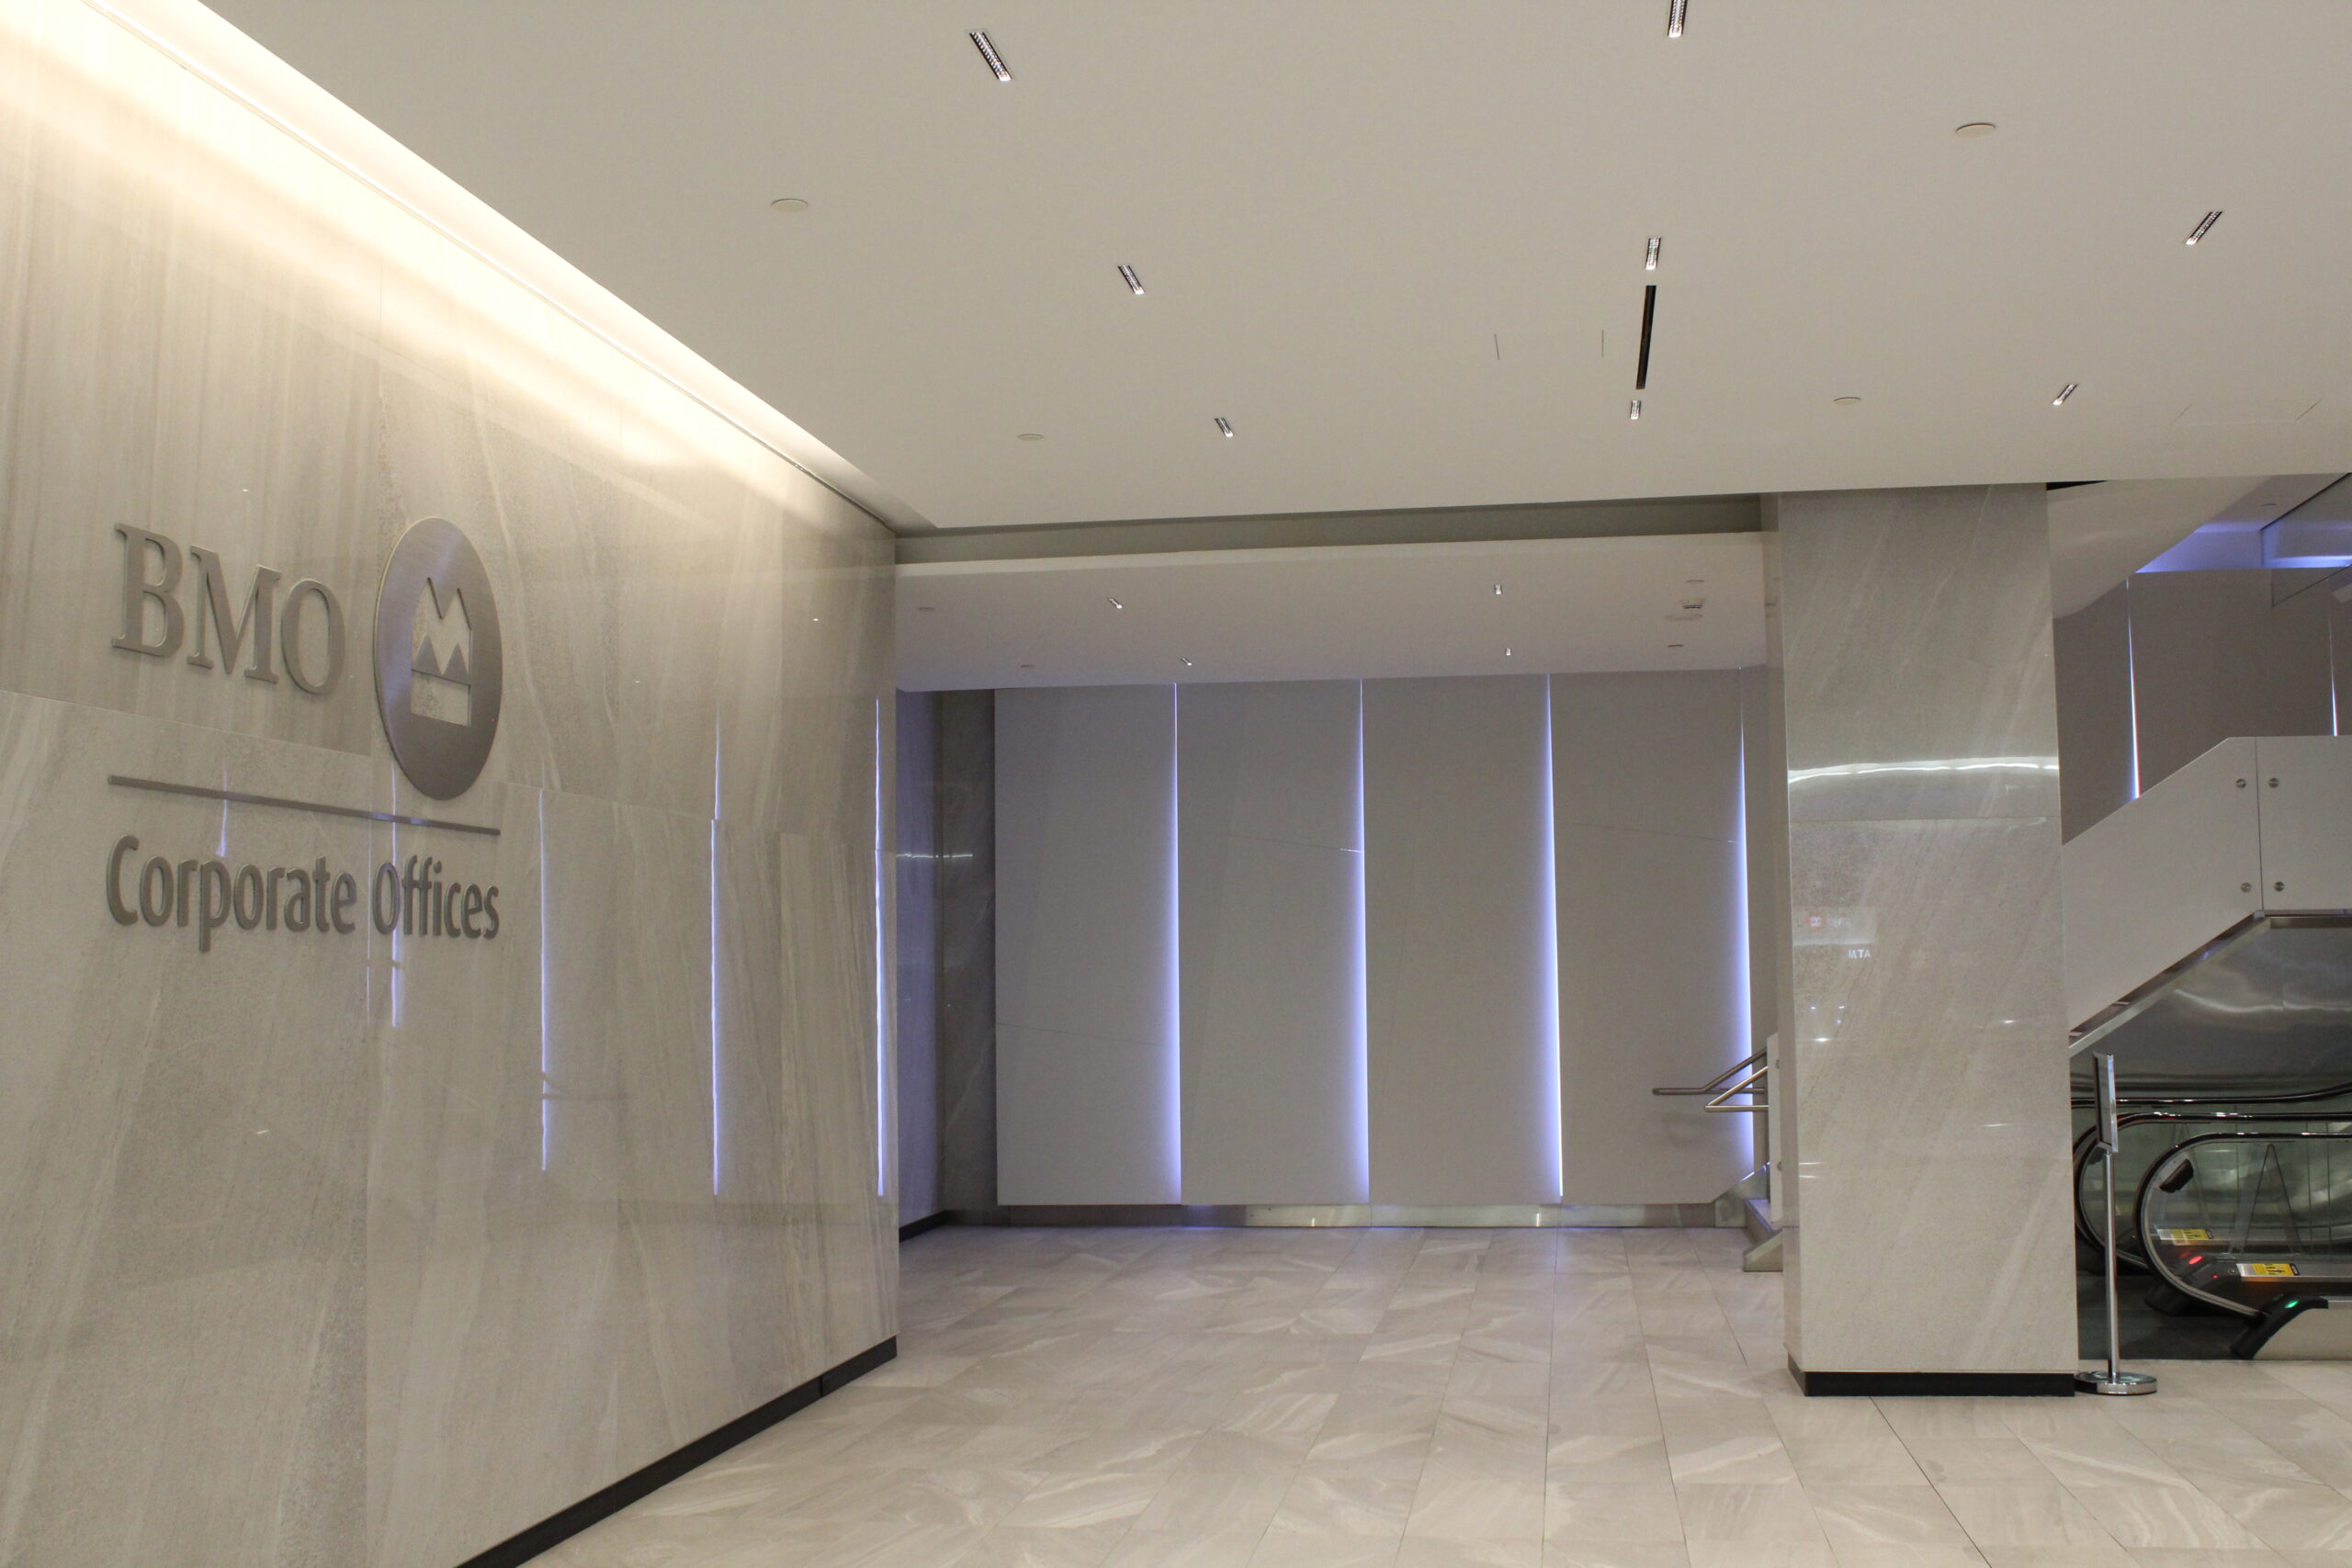 BMO Corporate Offices 1